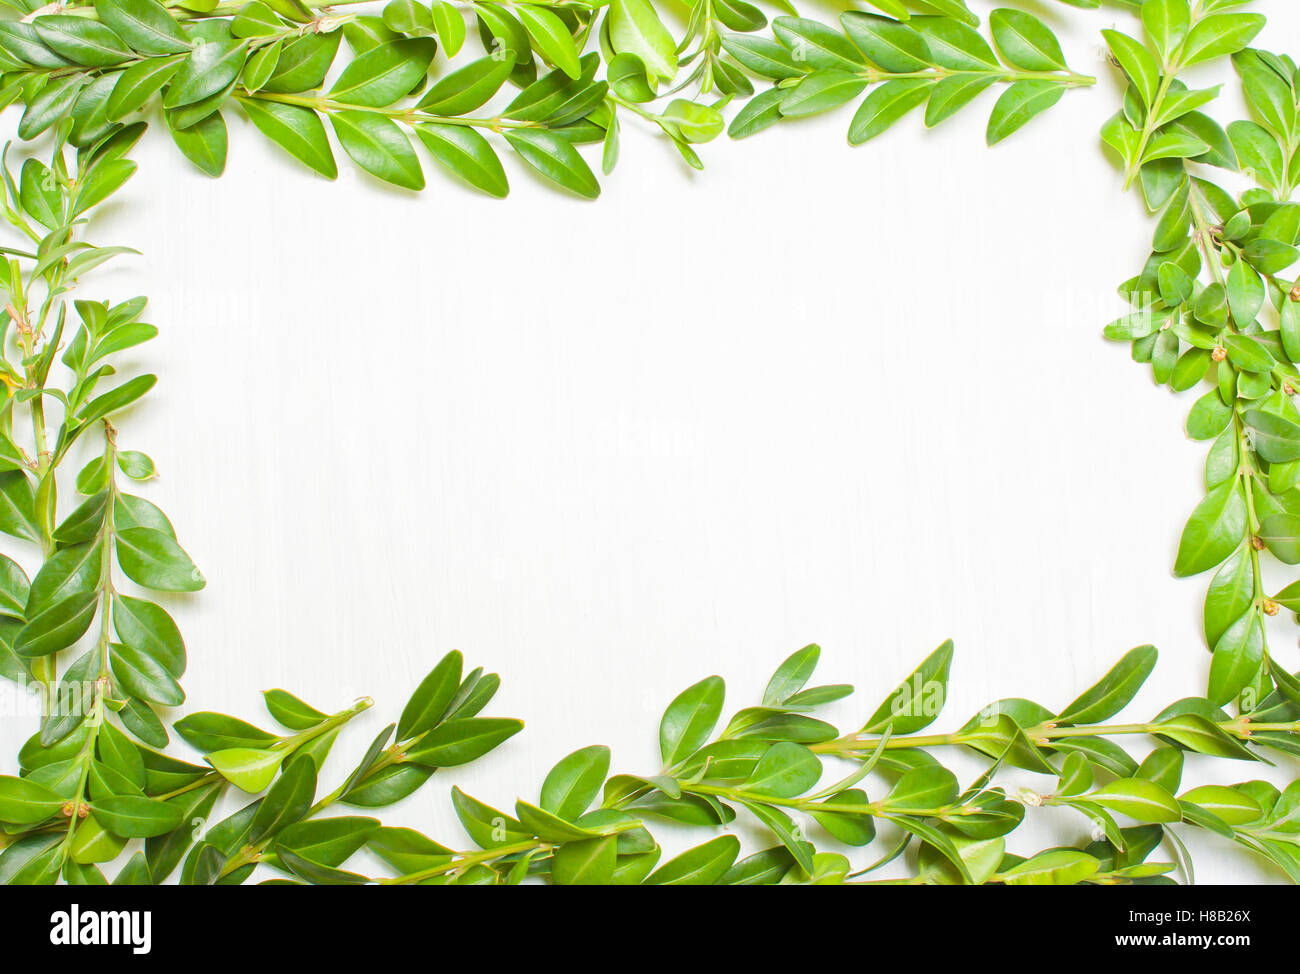 Framing of green leaves, plants on a white background. View from ...